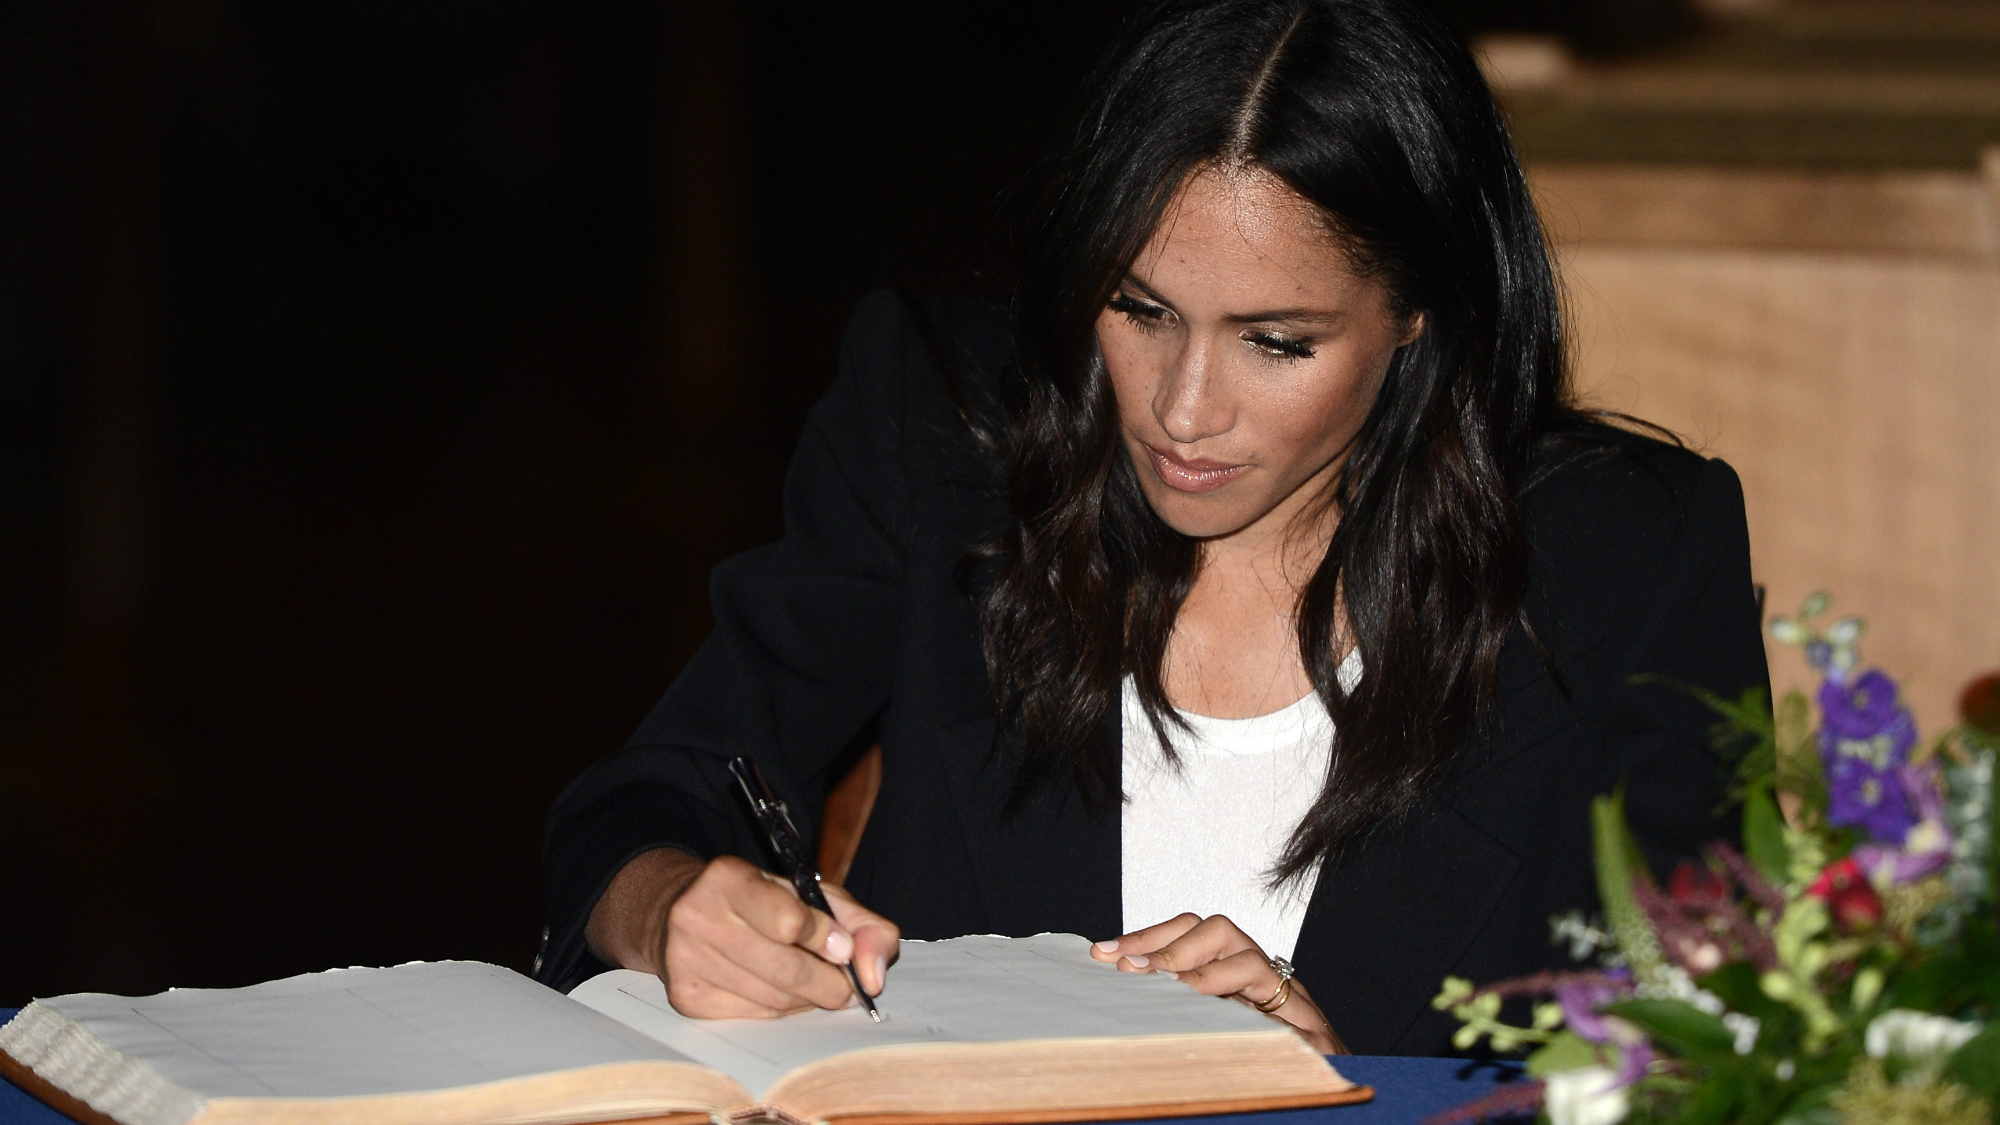 Meghan Markle just showcased her hidden talent in Ireland